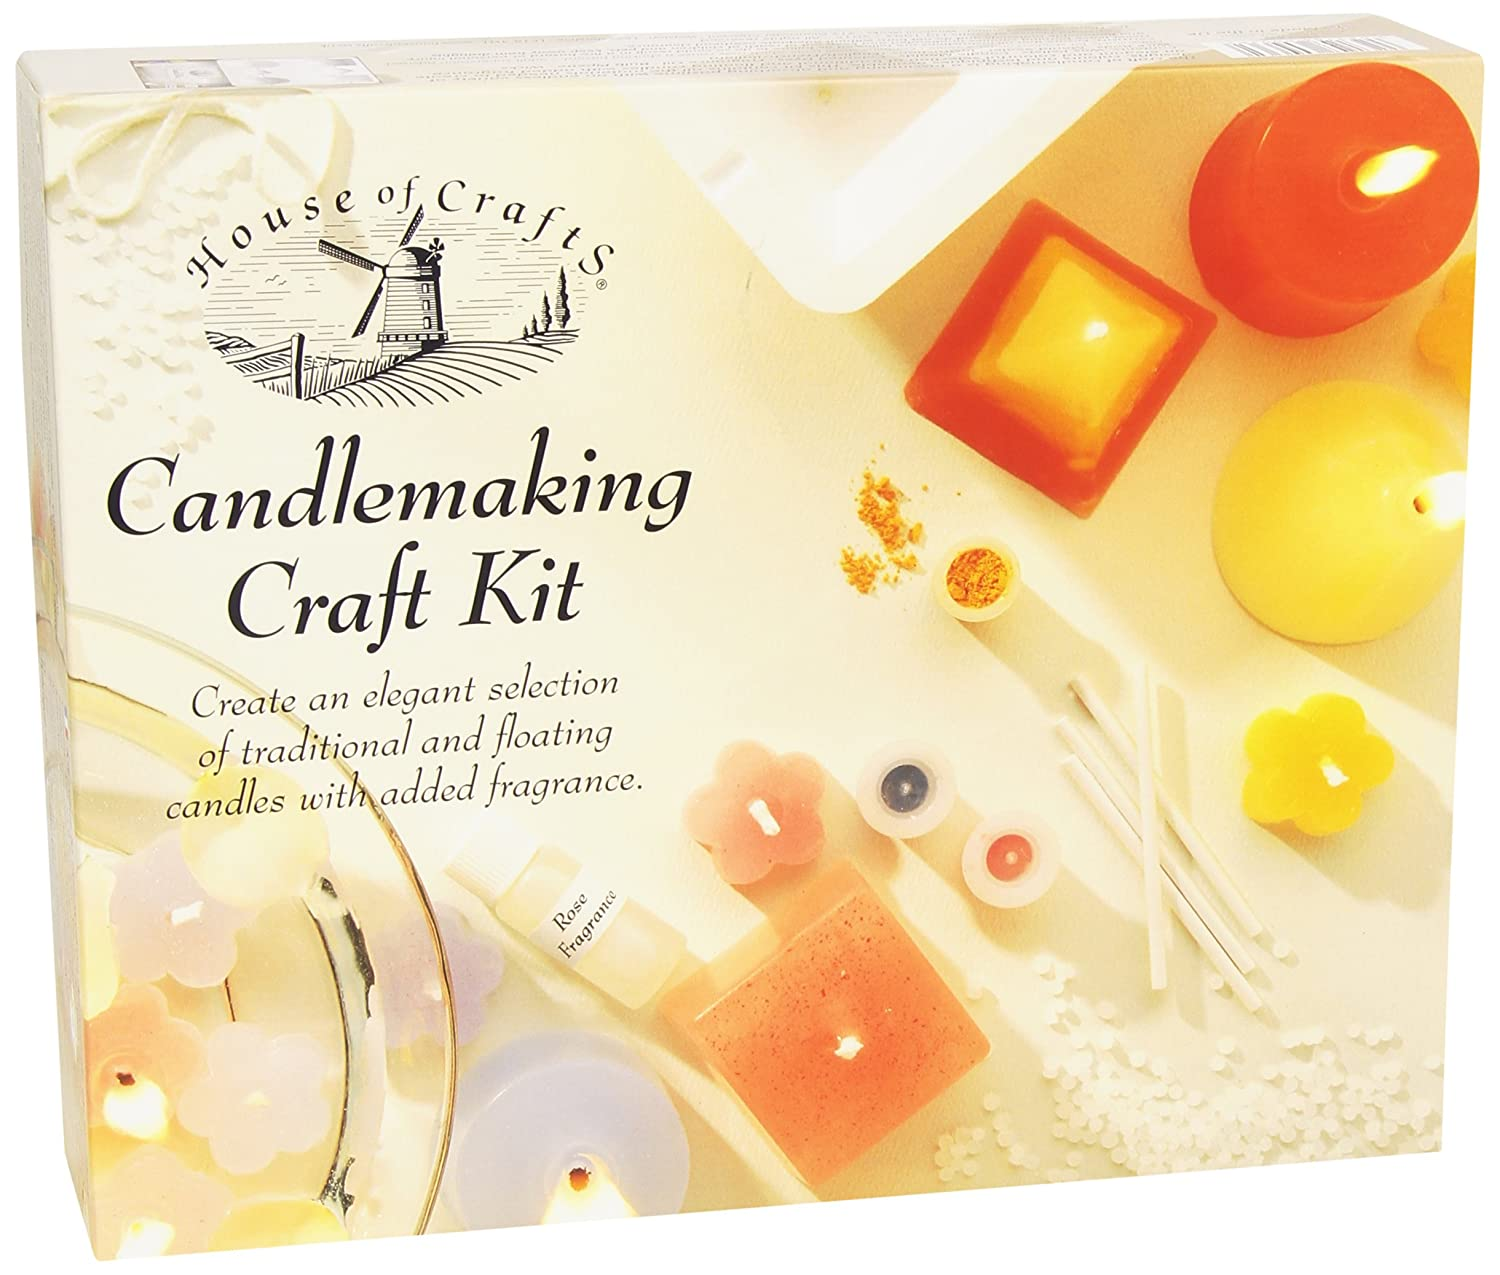 House of Crafts Candlemaking Craft Kit HC140 B000GCFO5I arts & crafts candles